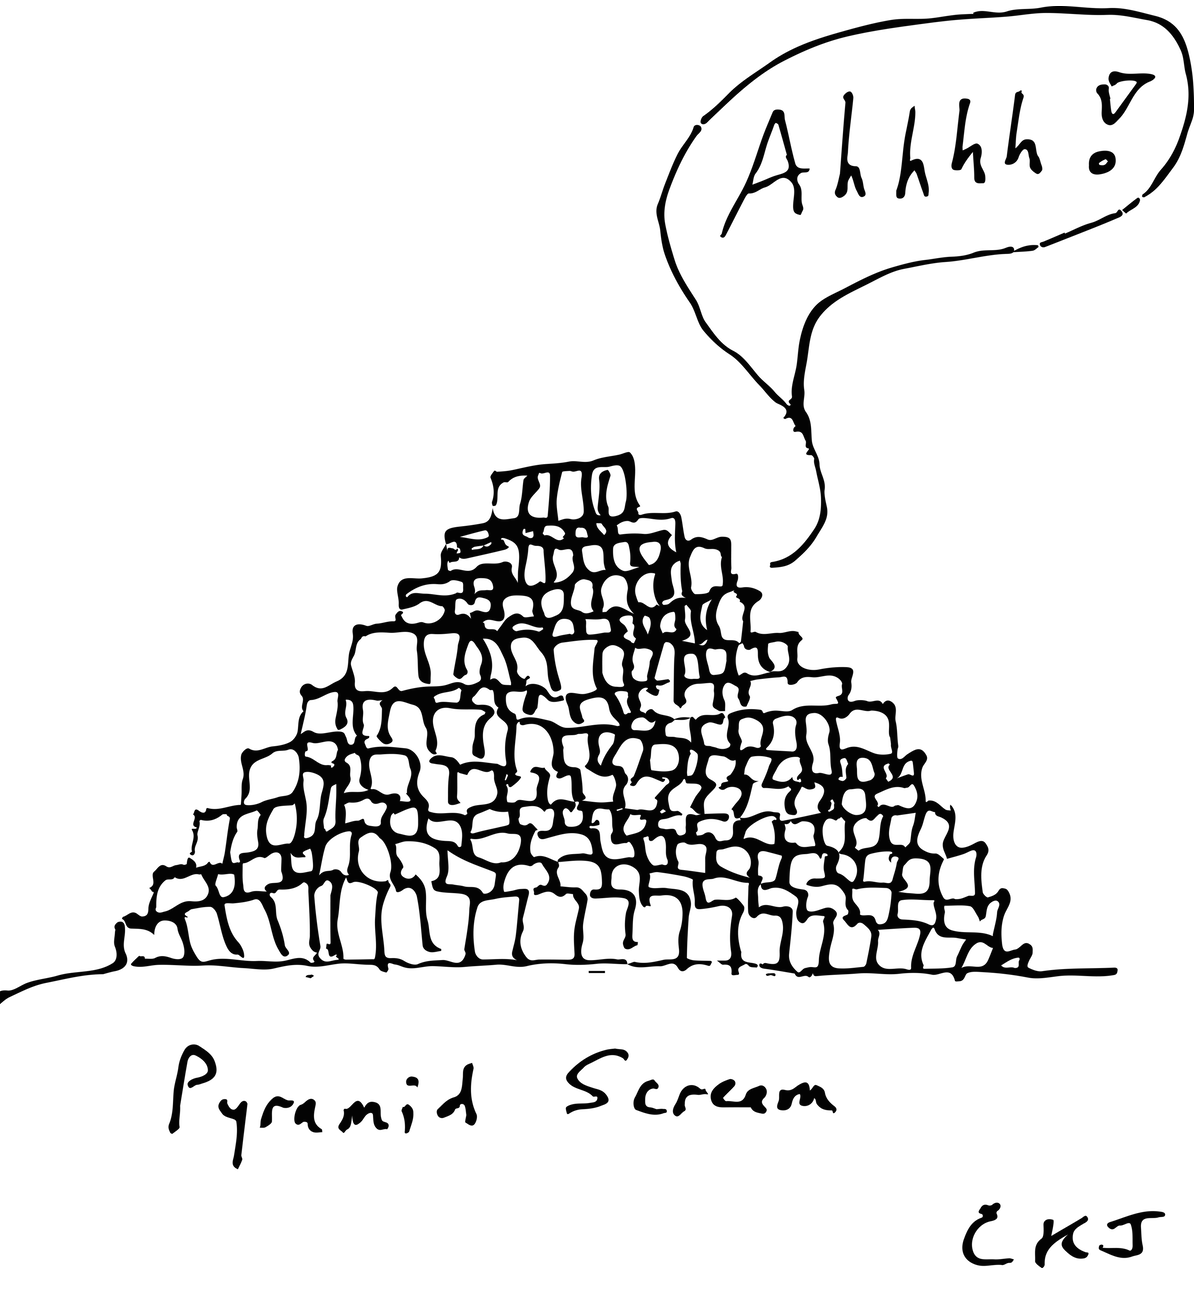 pyramid scream.png